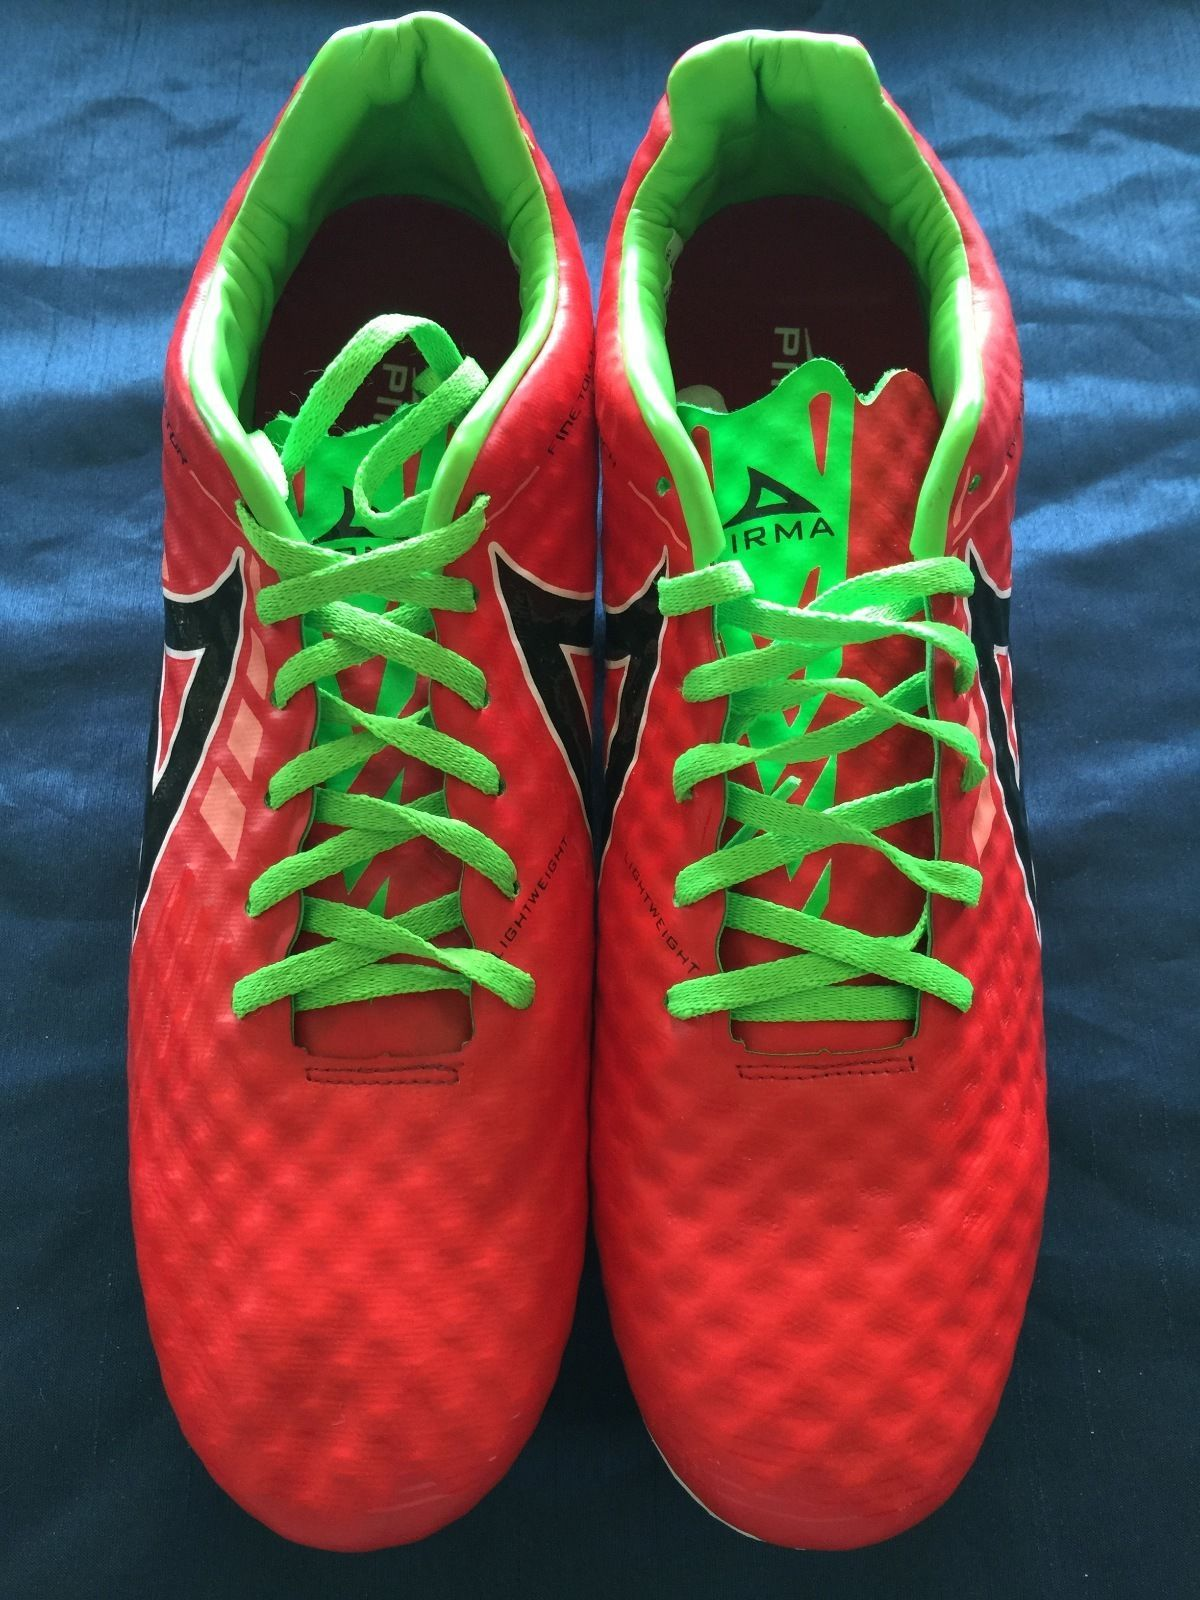 New Pirma Detonator Cleats Style 566 Red And 38 Similar Items